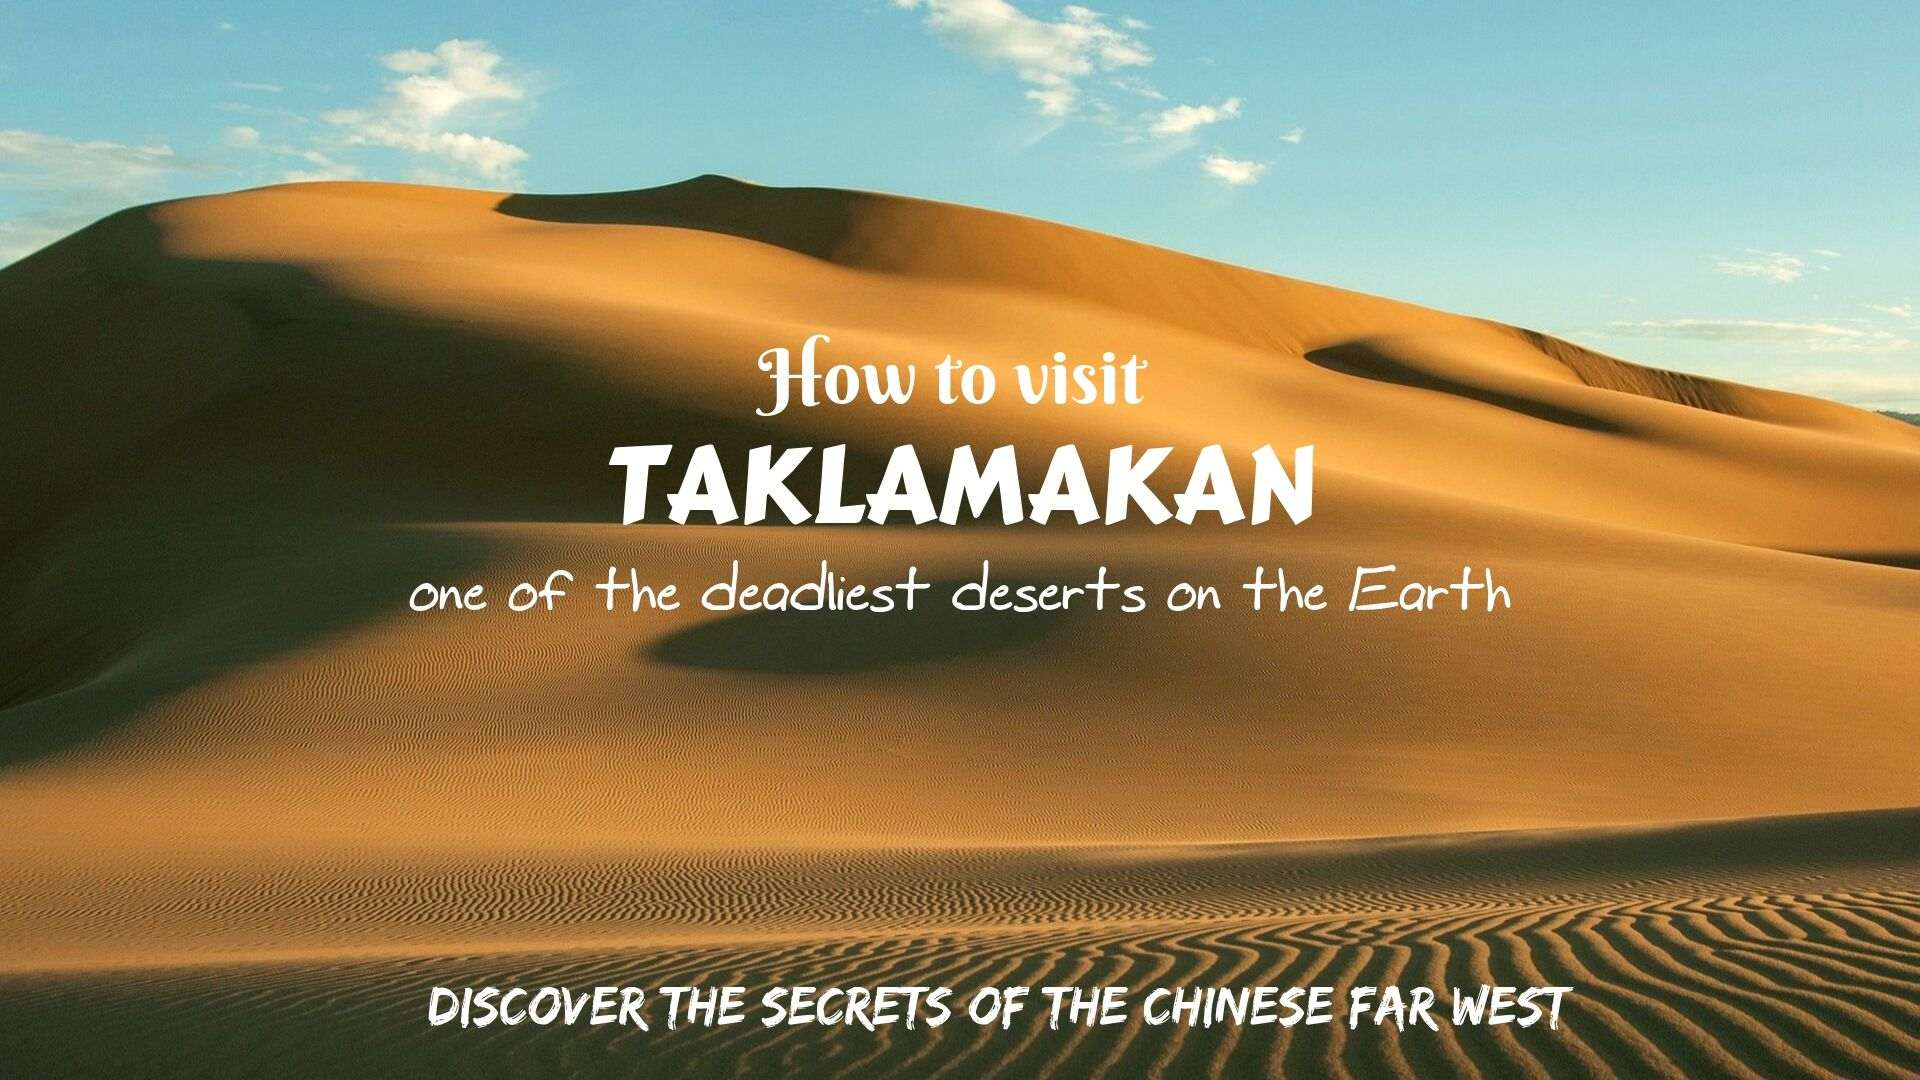 How to visit Taklamakan- one of the deadliest deserts on the Earth